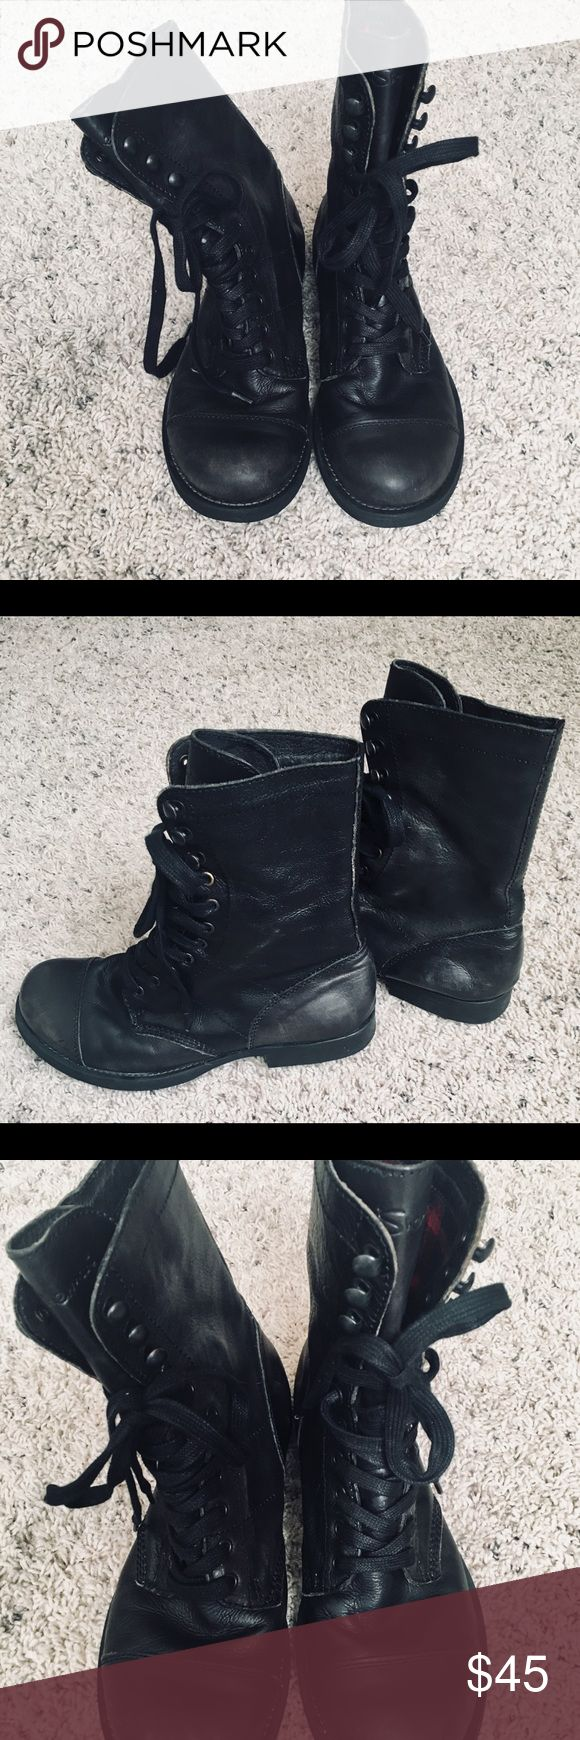 BEN SHERMAN Black Leather Lace up Boots Combat/Utility style awesome boots in very good condition-  Men's 7 Euro 40 but they are unisex and women can wear them if they are a size 10 Euro 42) Ben Sherman Shoes Combat & Moto Boots